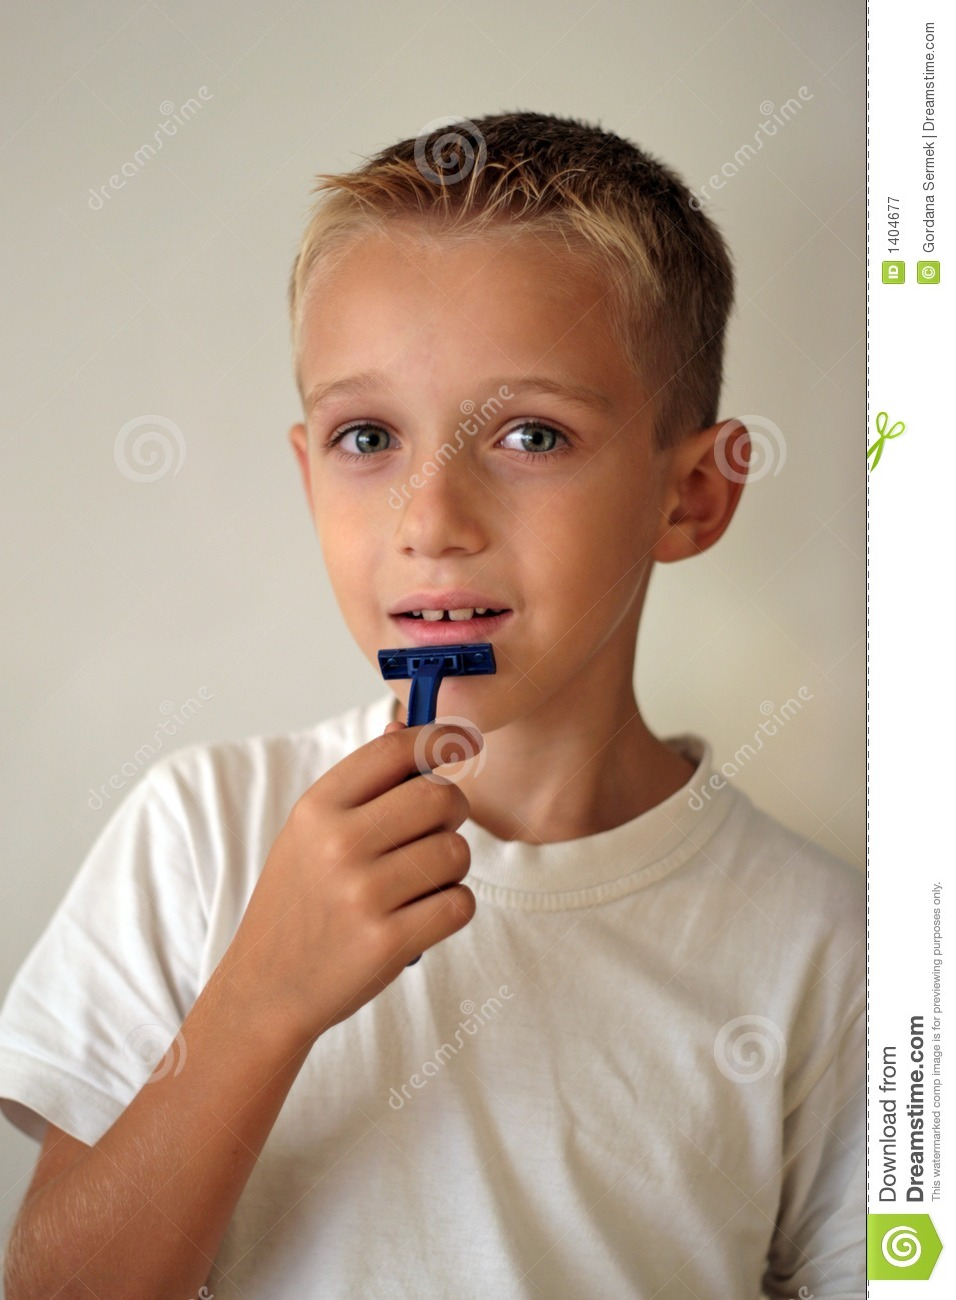 A Humorous Shot Of A Young Boy Shaving Royalty Free Stock